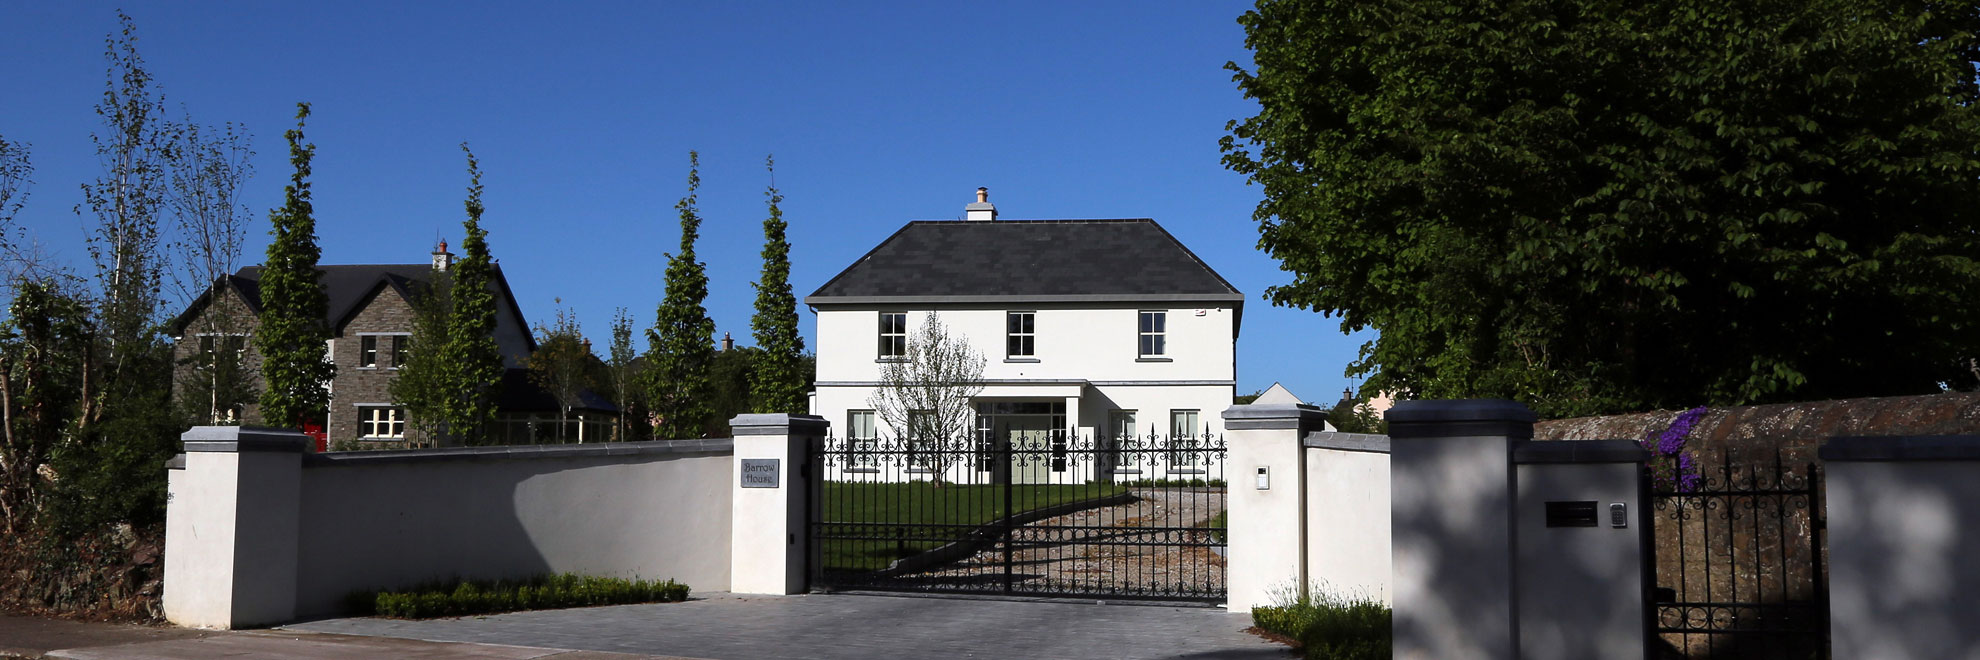 Rathcormac-Cork-Classic-New-Build_0007-1980x660